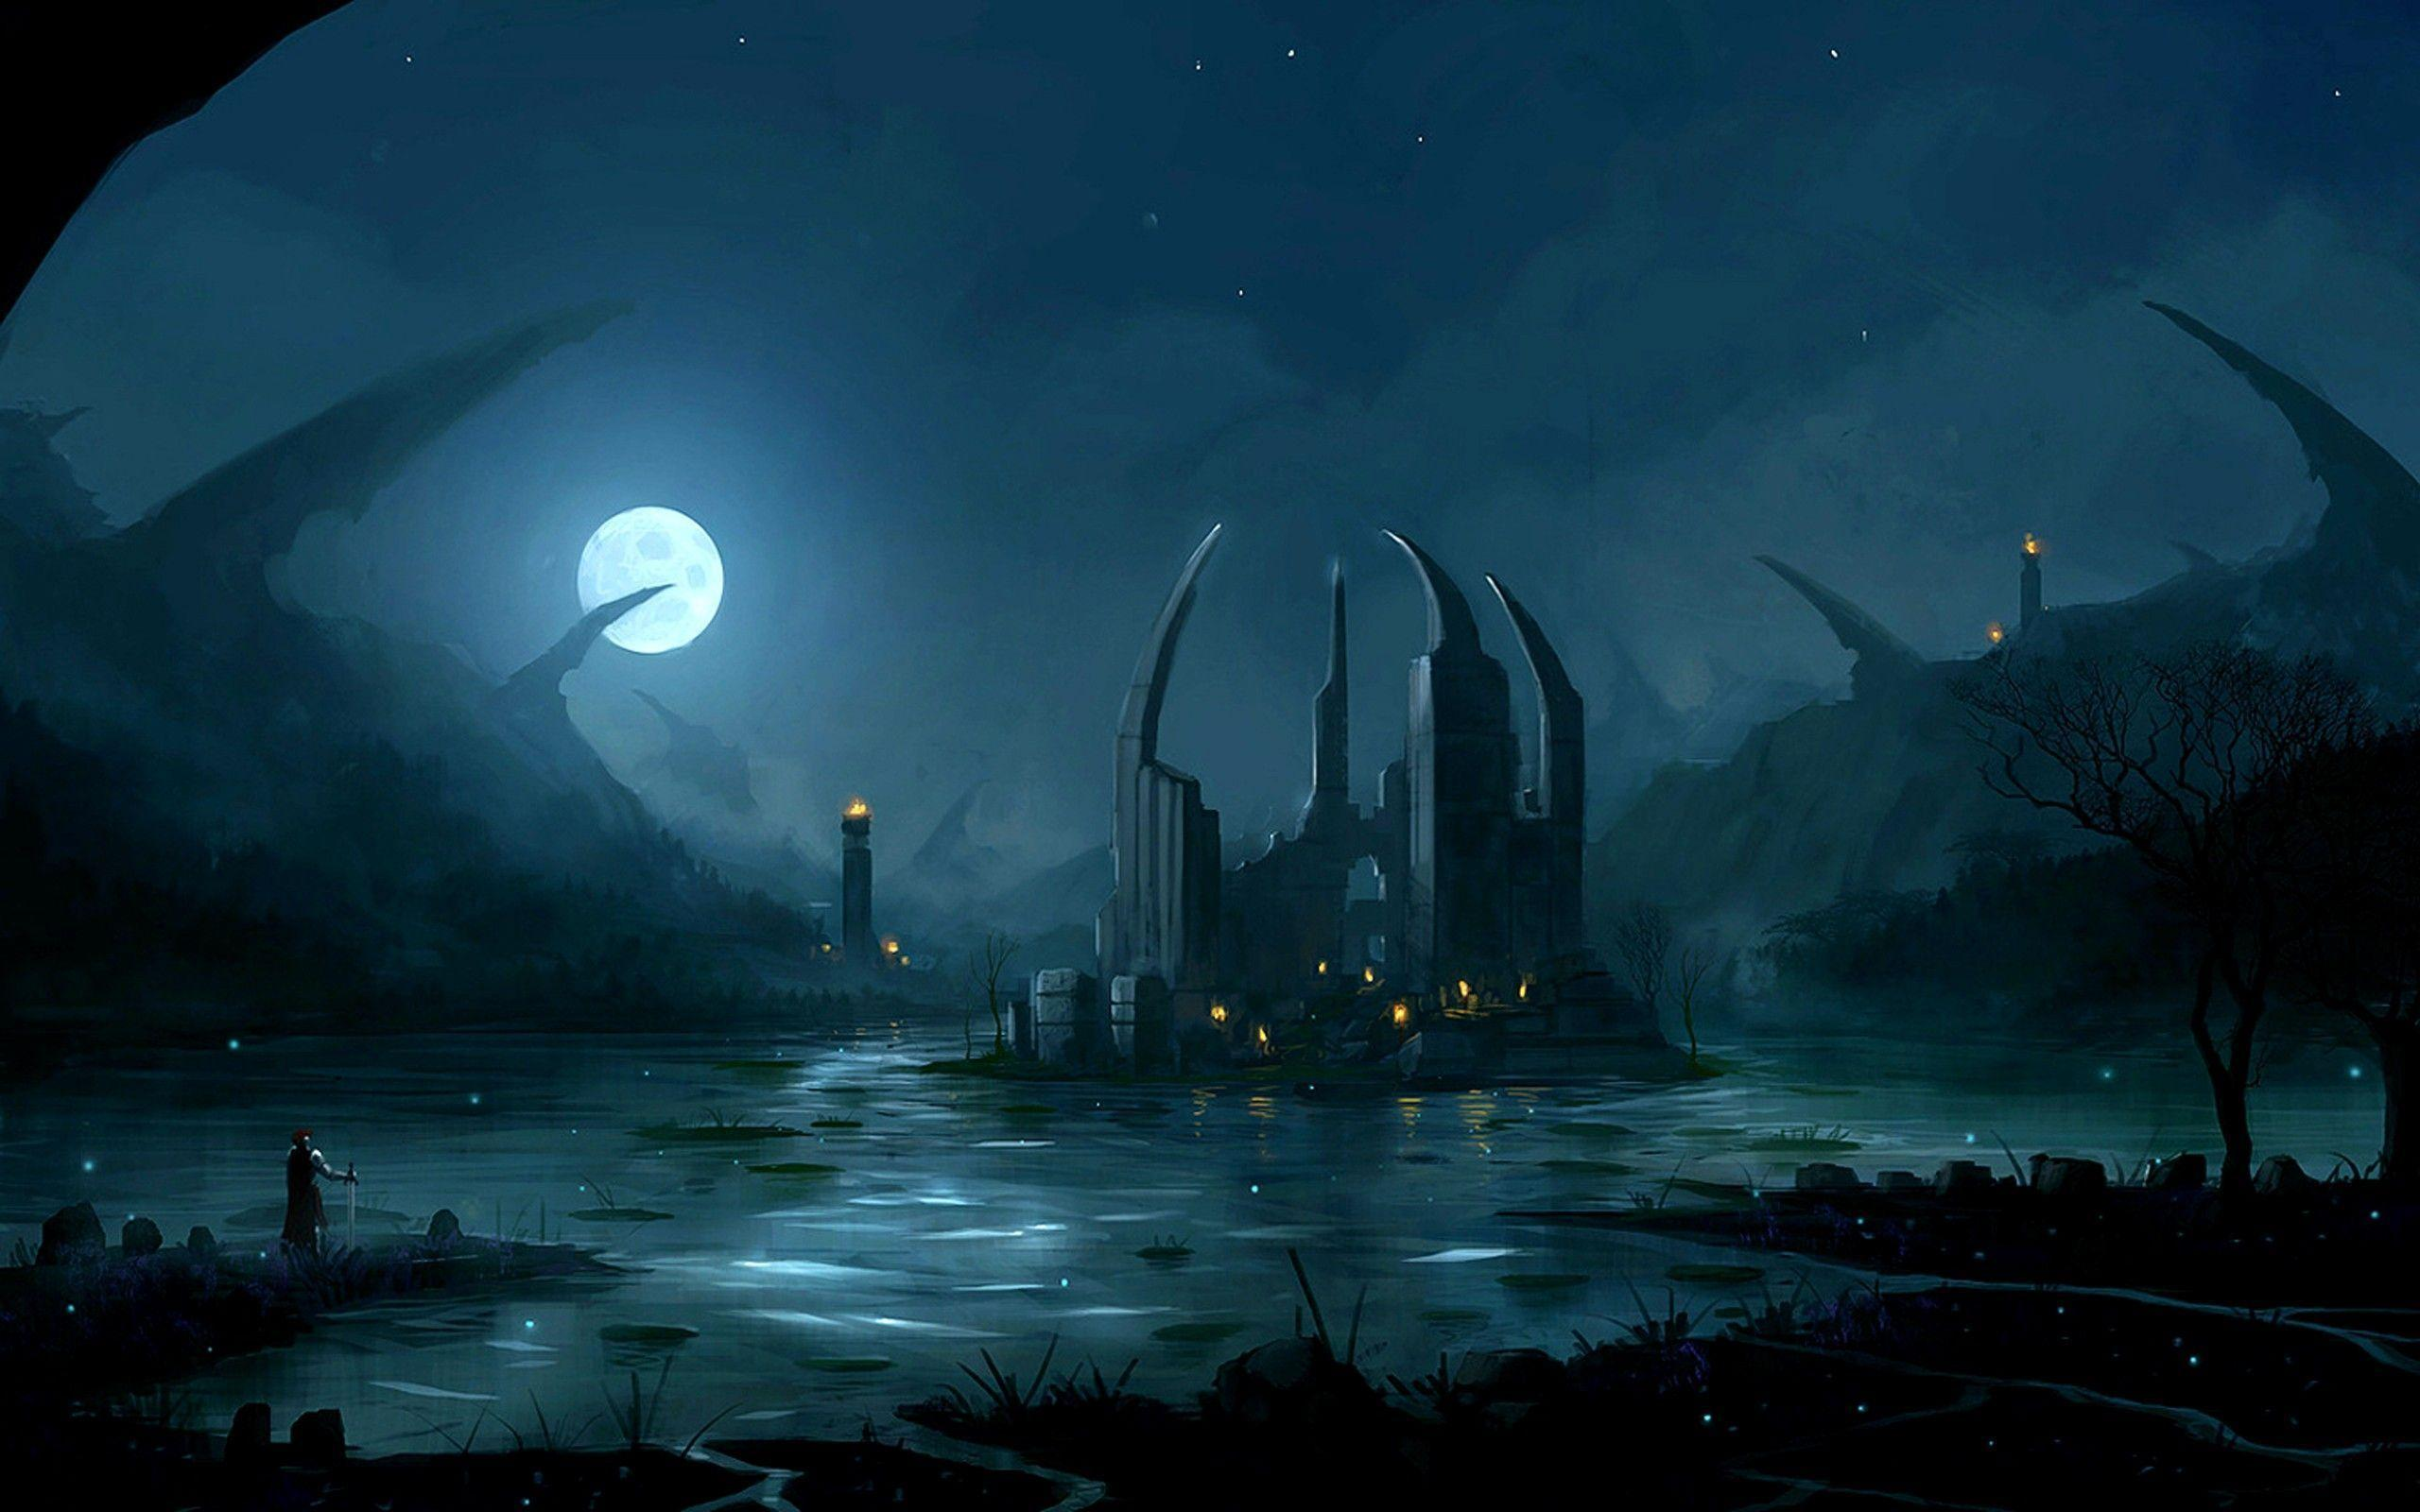 Night Time Wallpapers - Wallpaper Cave